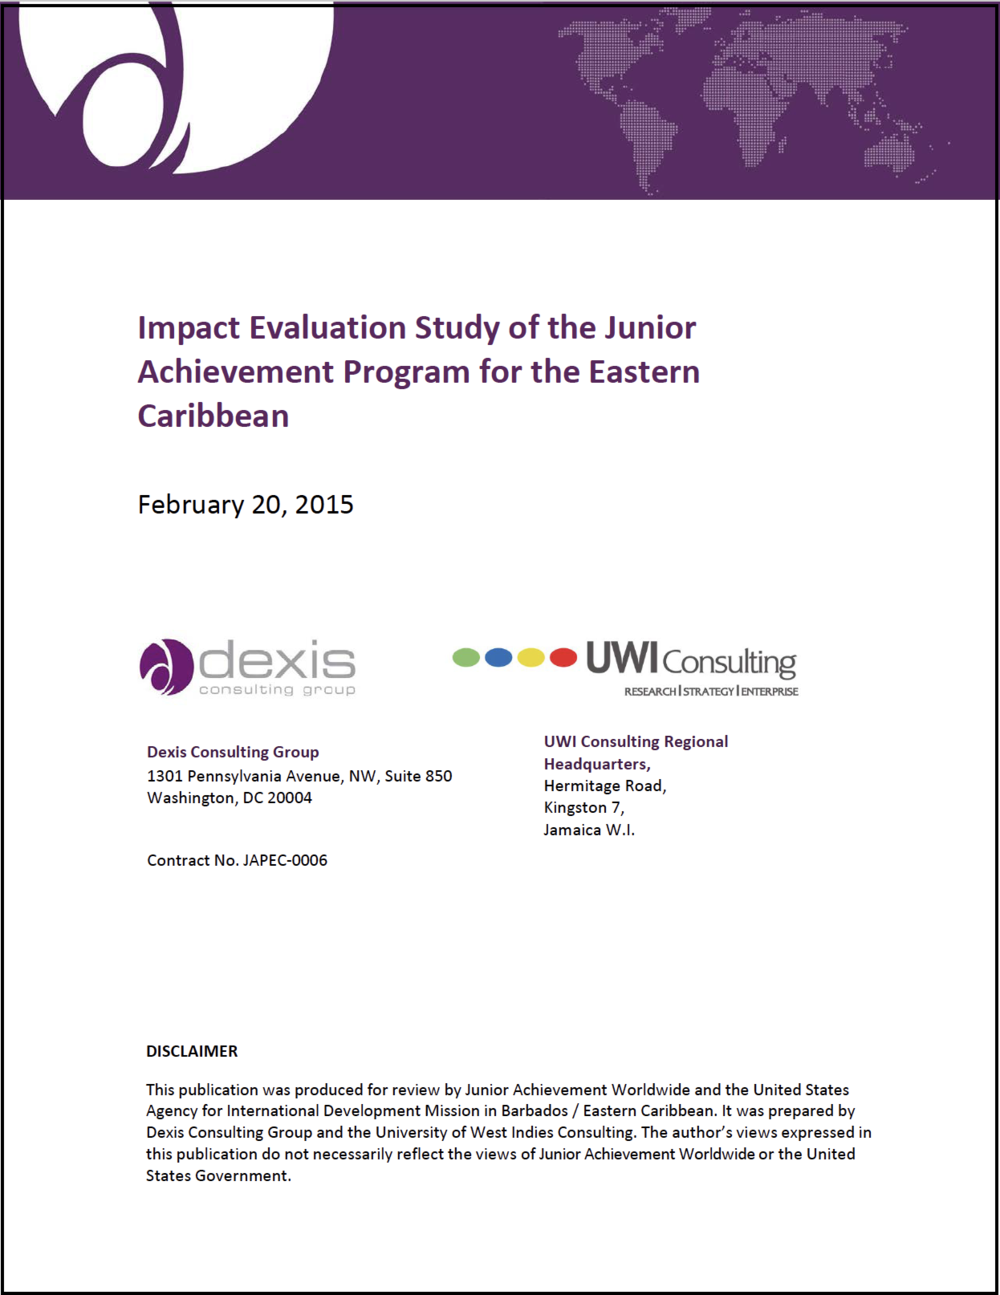 04-Impact Evaluation Study of the Junior Achievement Program for the Eastern Caribbean-cover.png